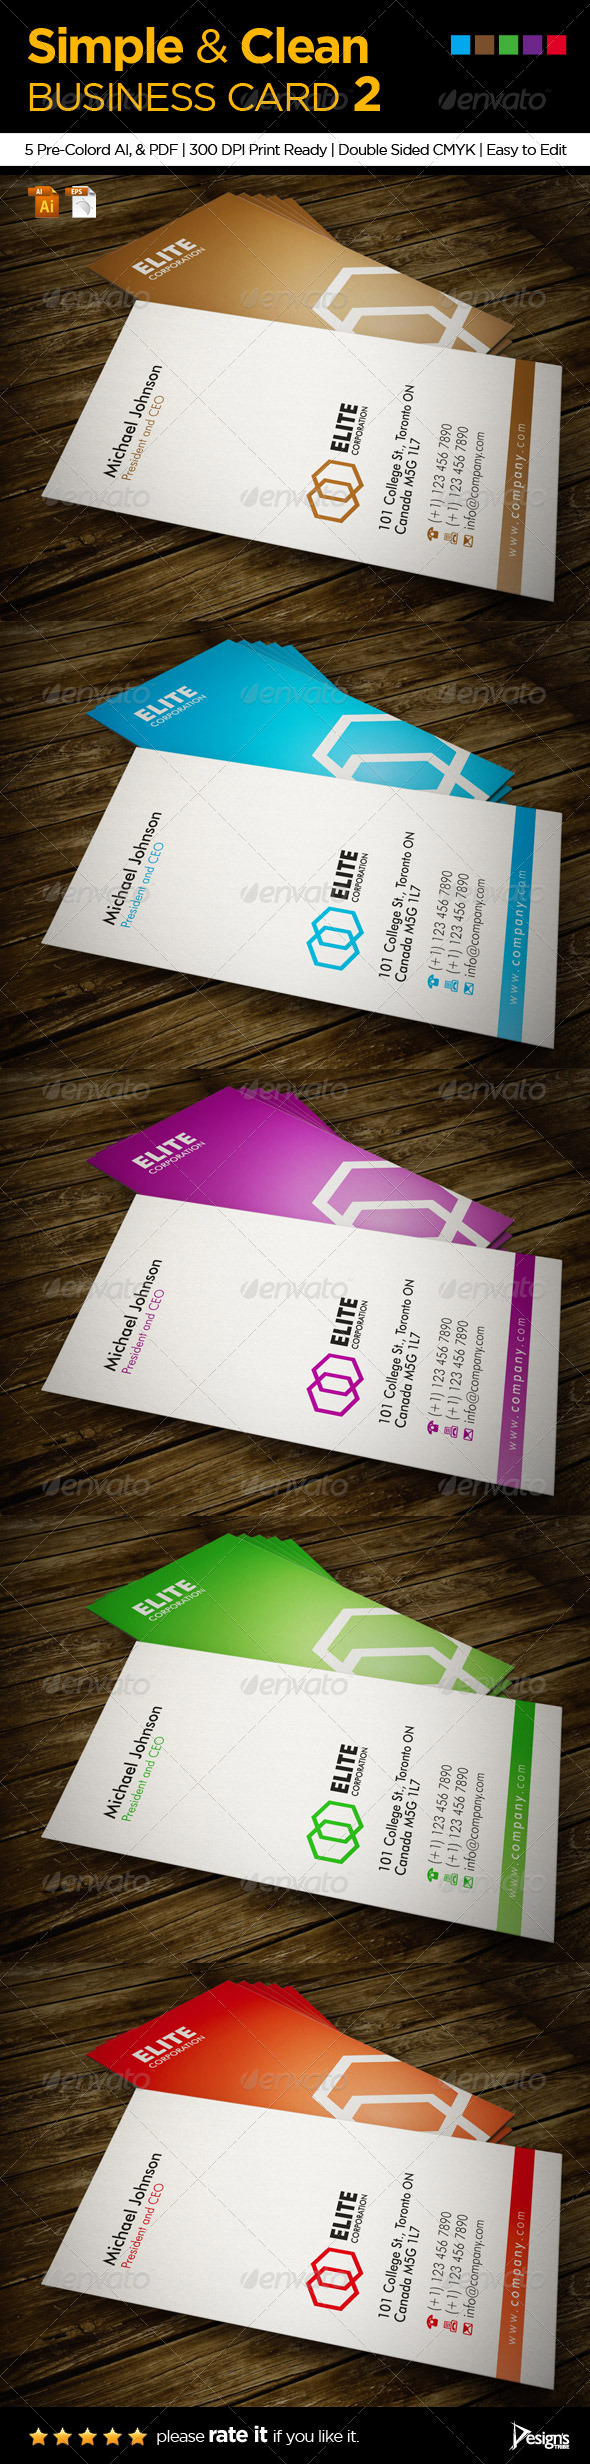 Simple and Clean Business Card 2 - Corporate Business Cards